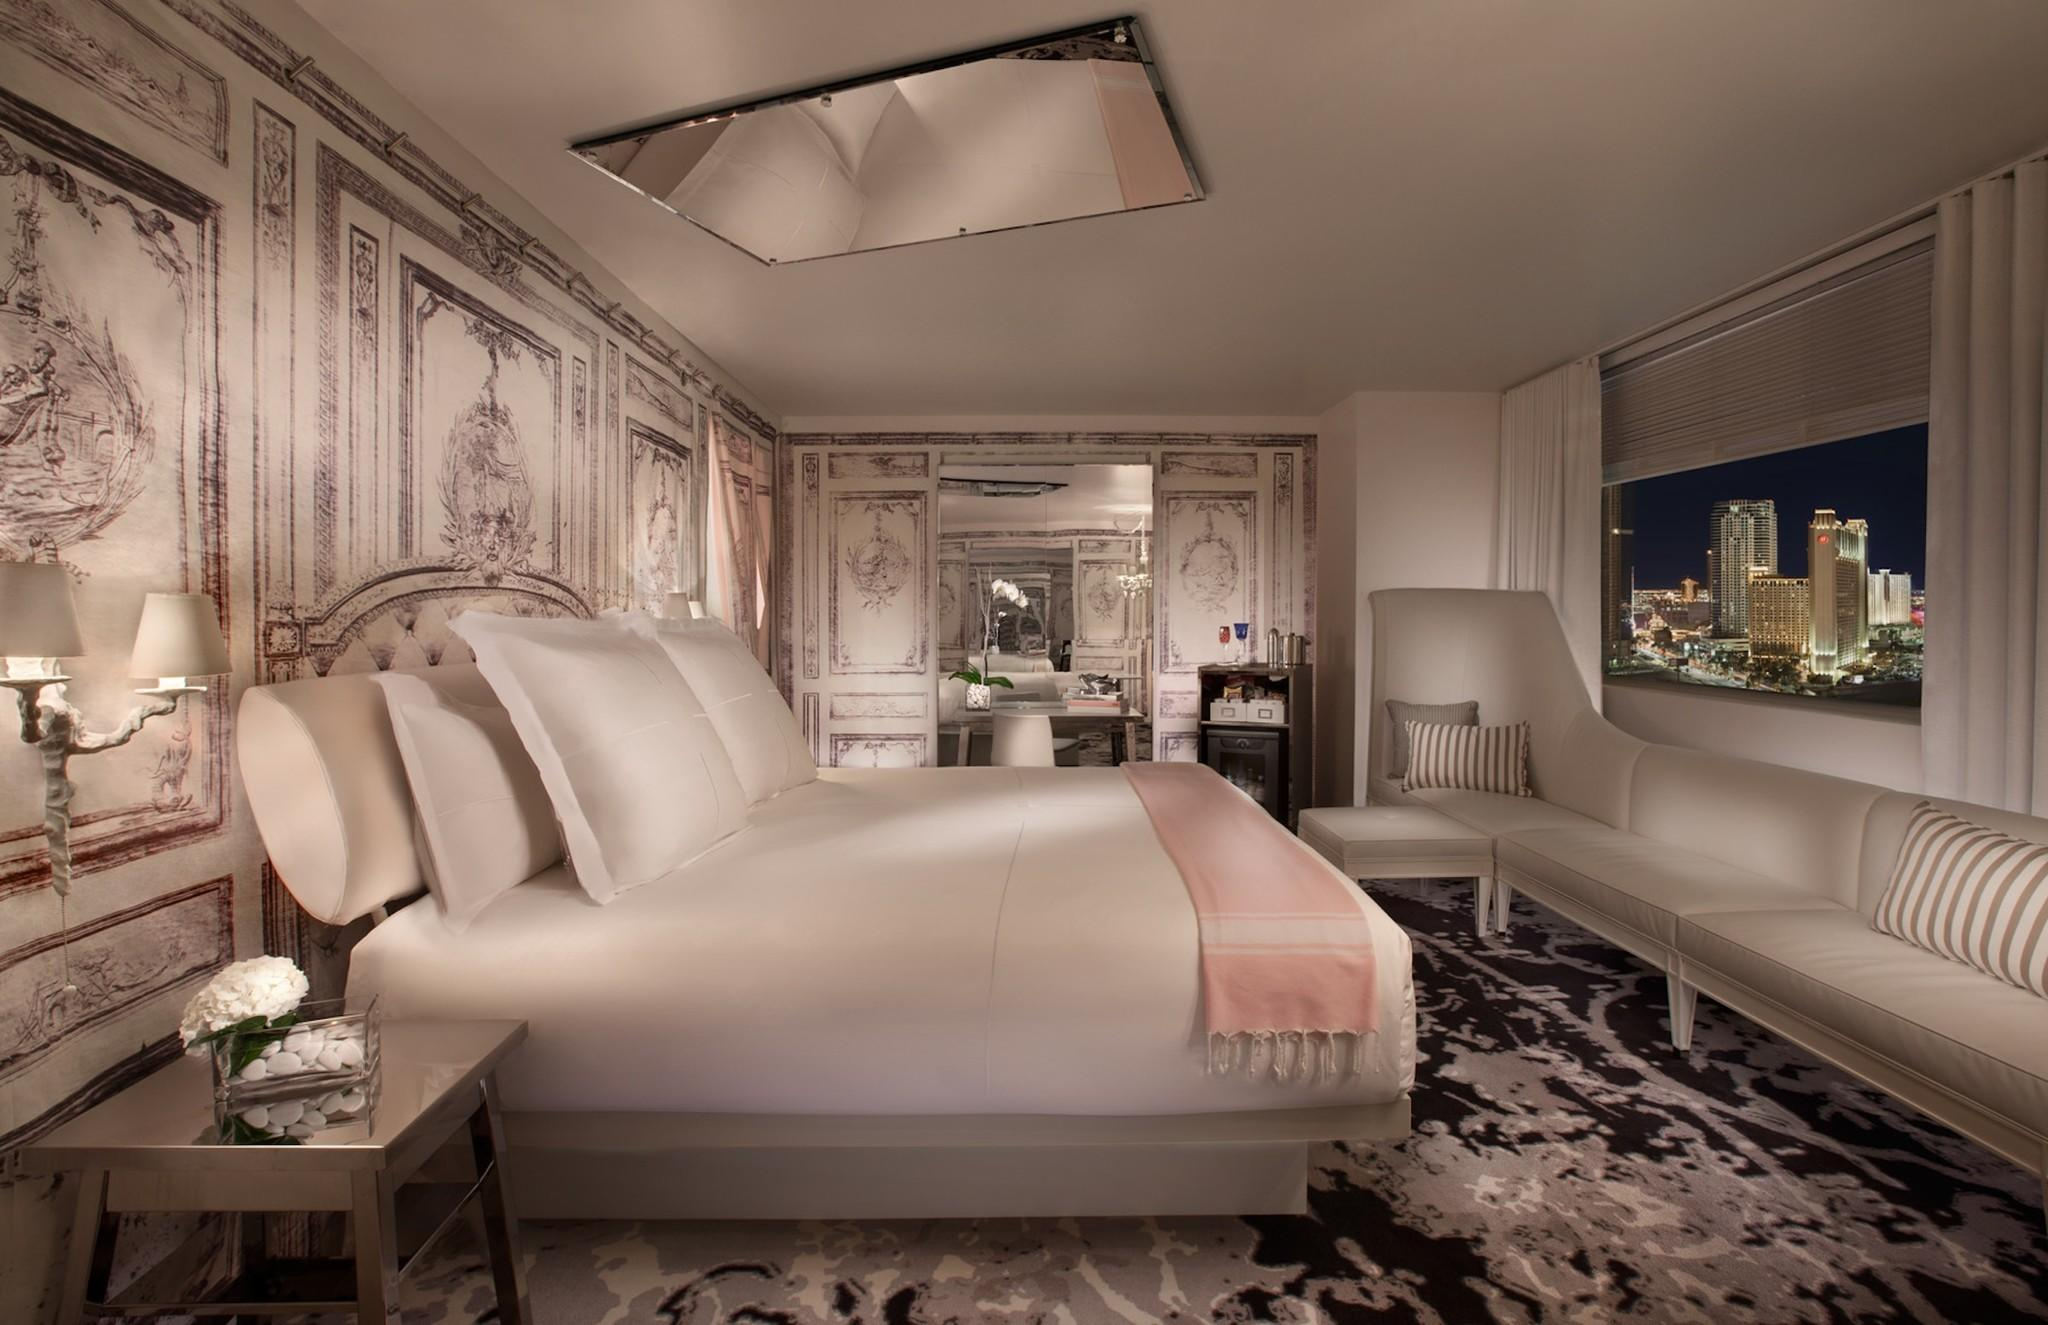 An artist's rendering of a king room at the SLS Las Vegas Hotel & Casino, where a special deal has weekday rates as low as $109 a night.